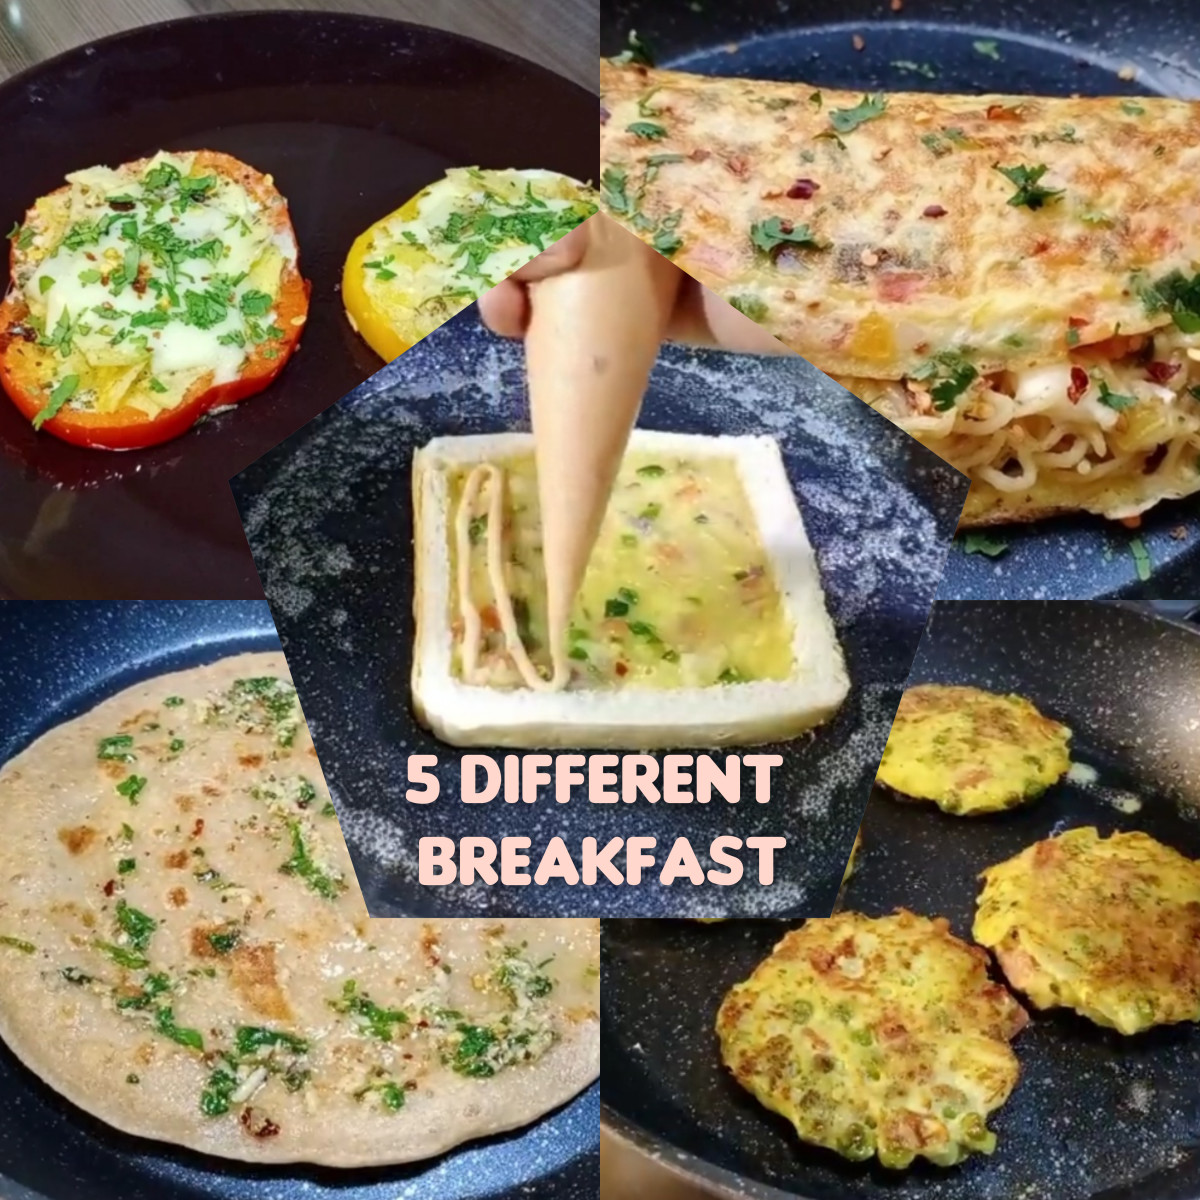 5-different-healthy-breakfast-10-minute-ready-homemade-recipes